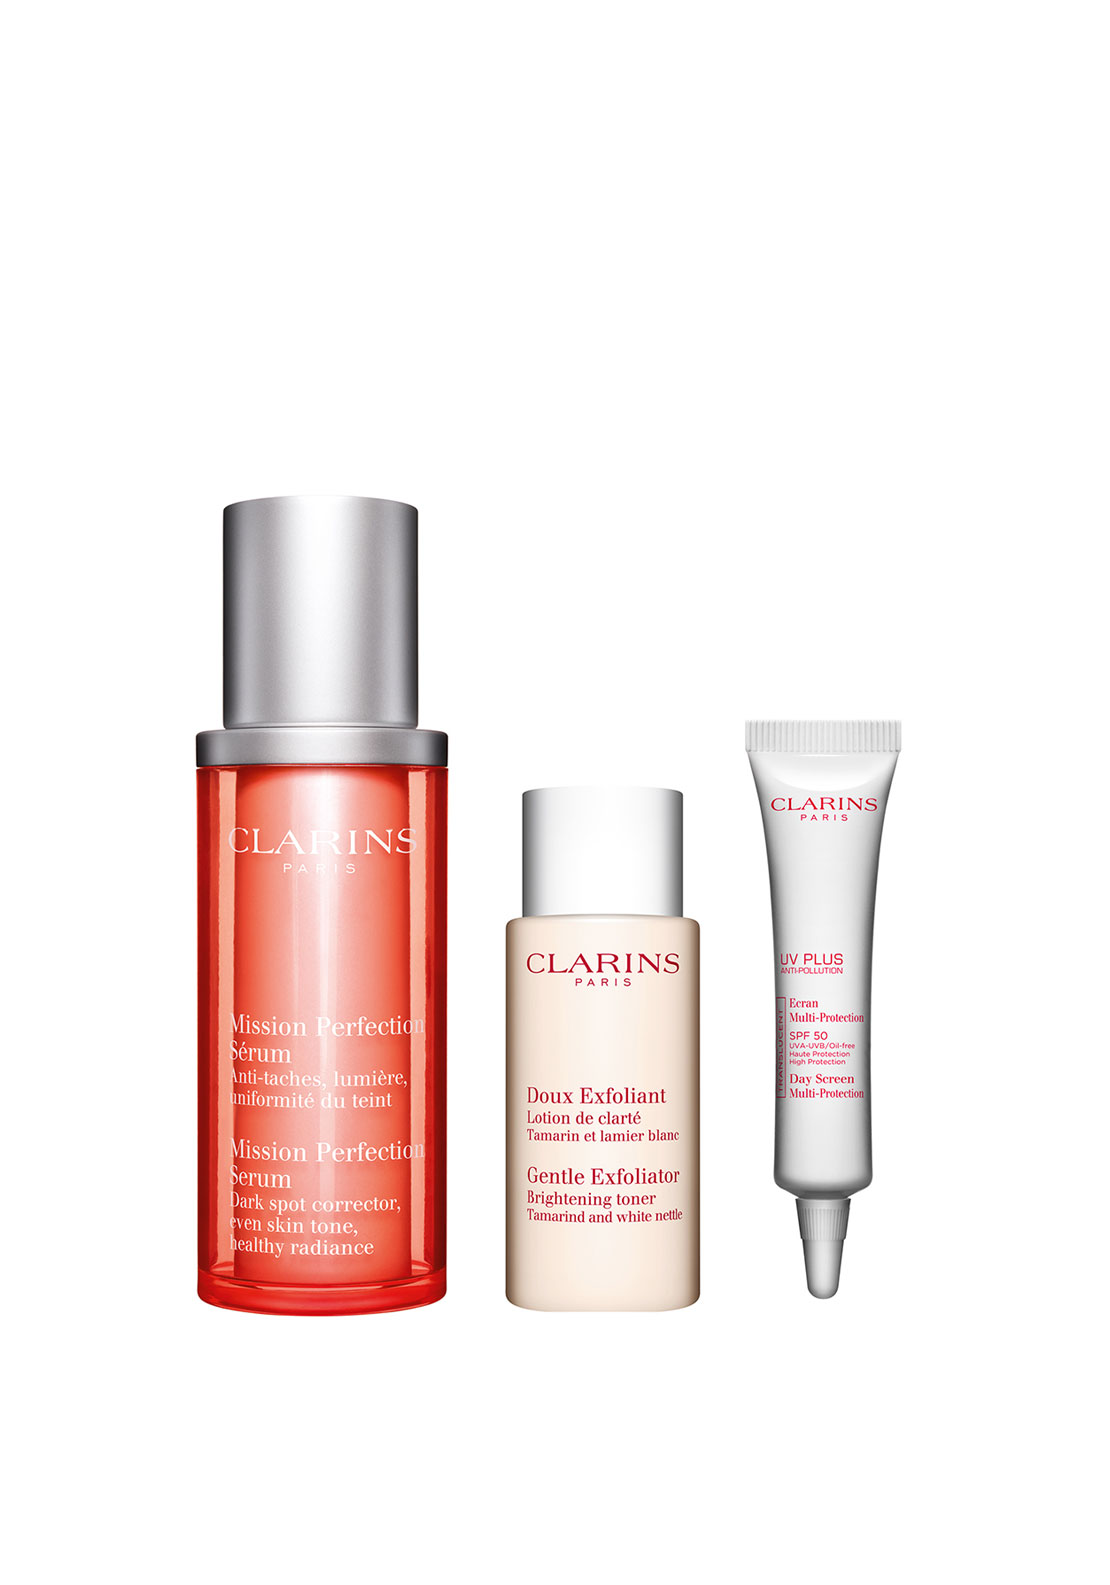 Clarins 'Perfect Skin' Gift Set